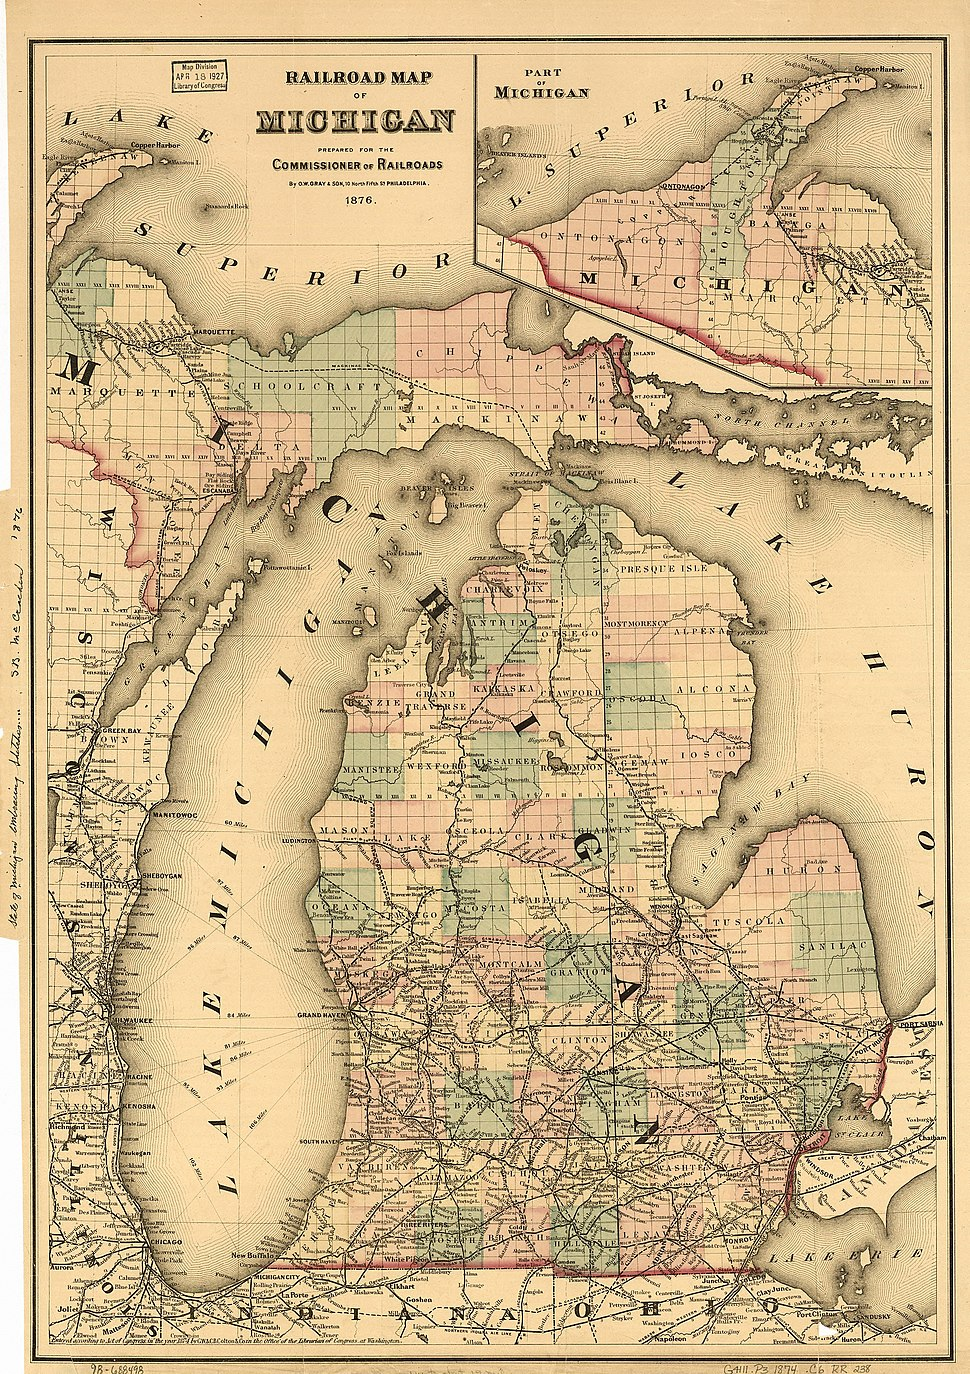 Michigan railroad map 1876